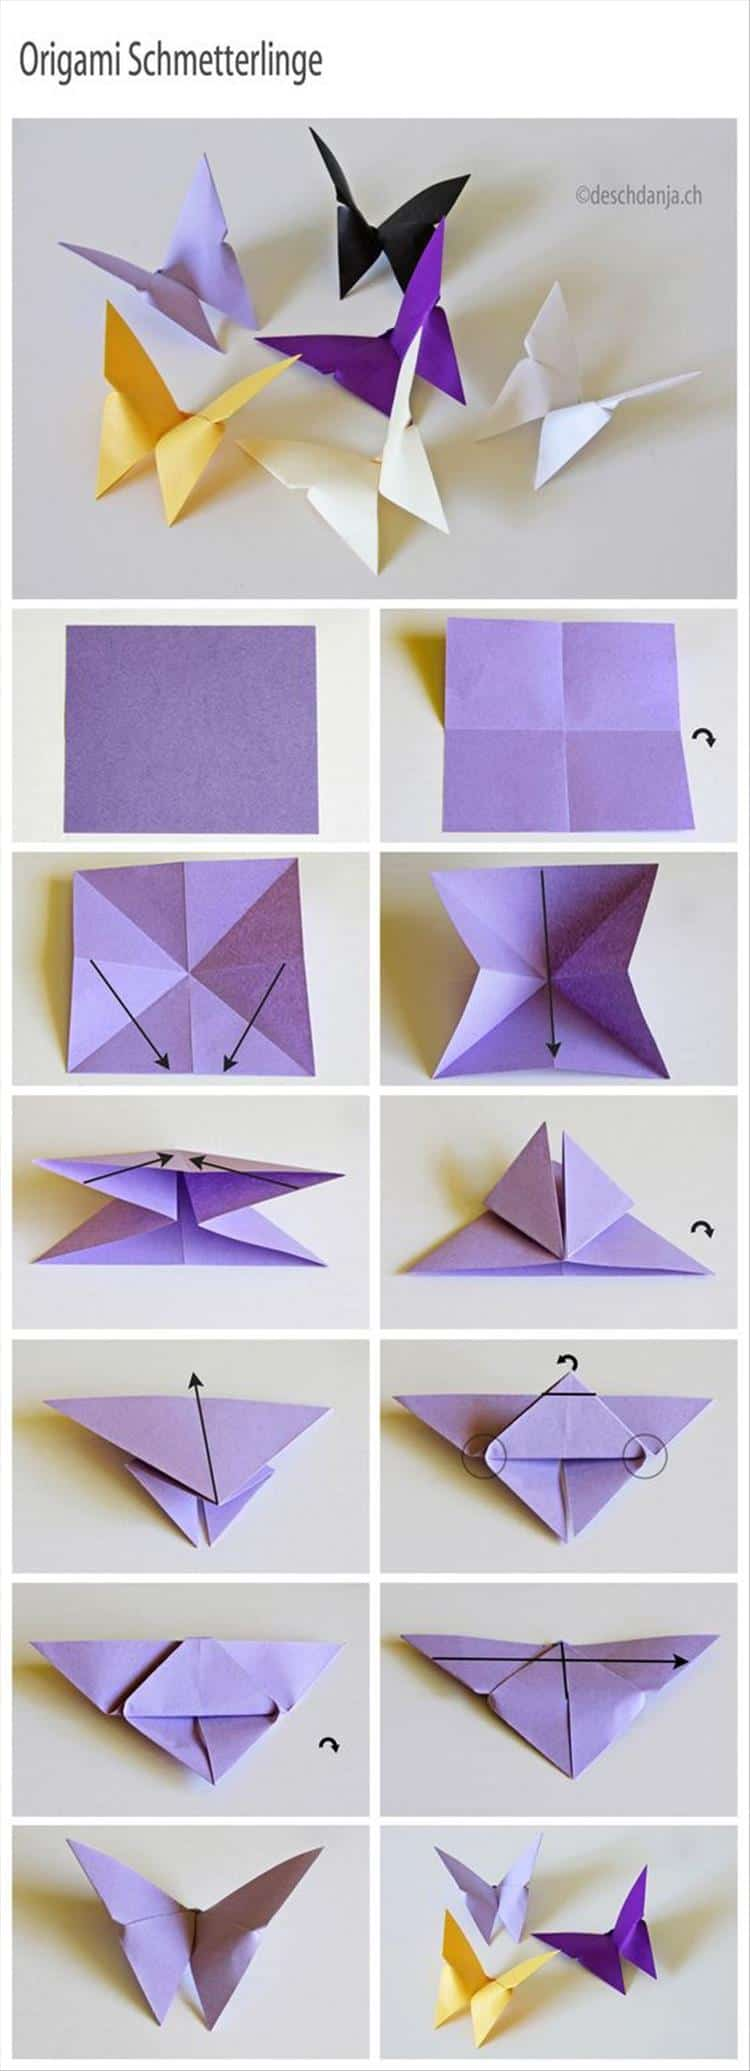 Origami butterglies